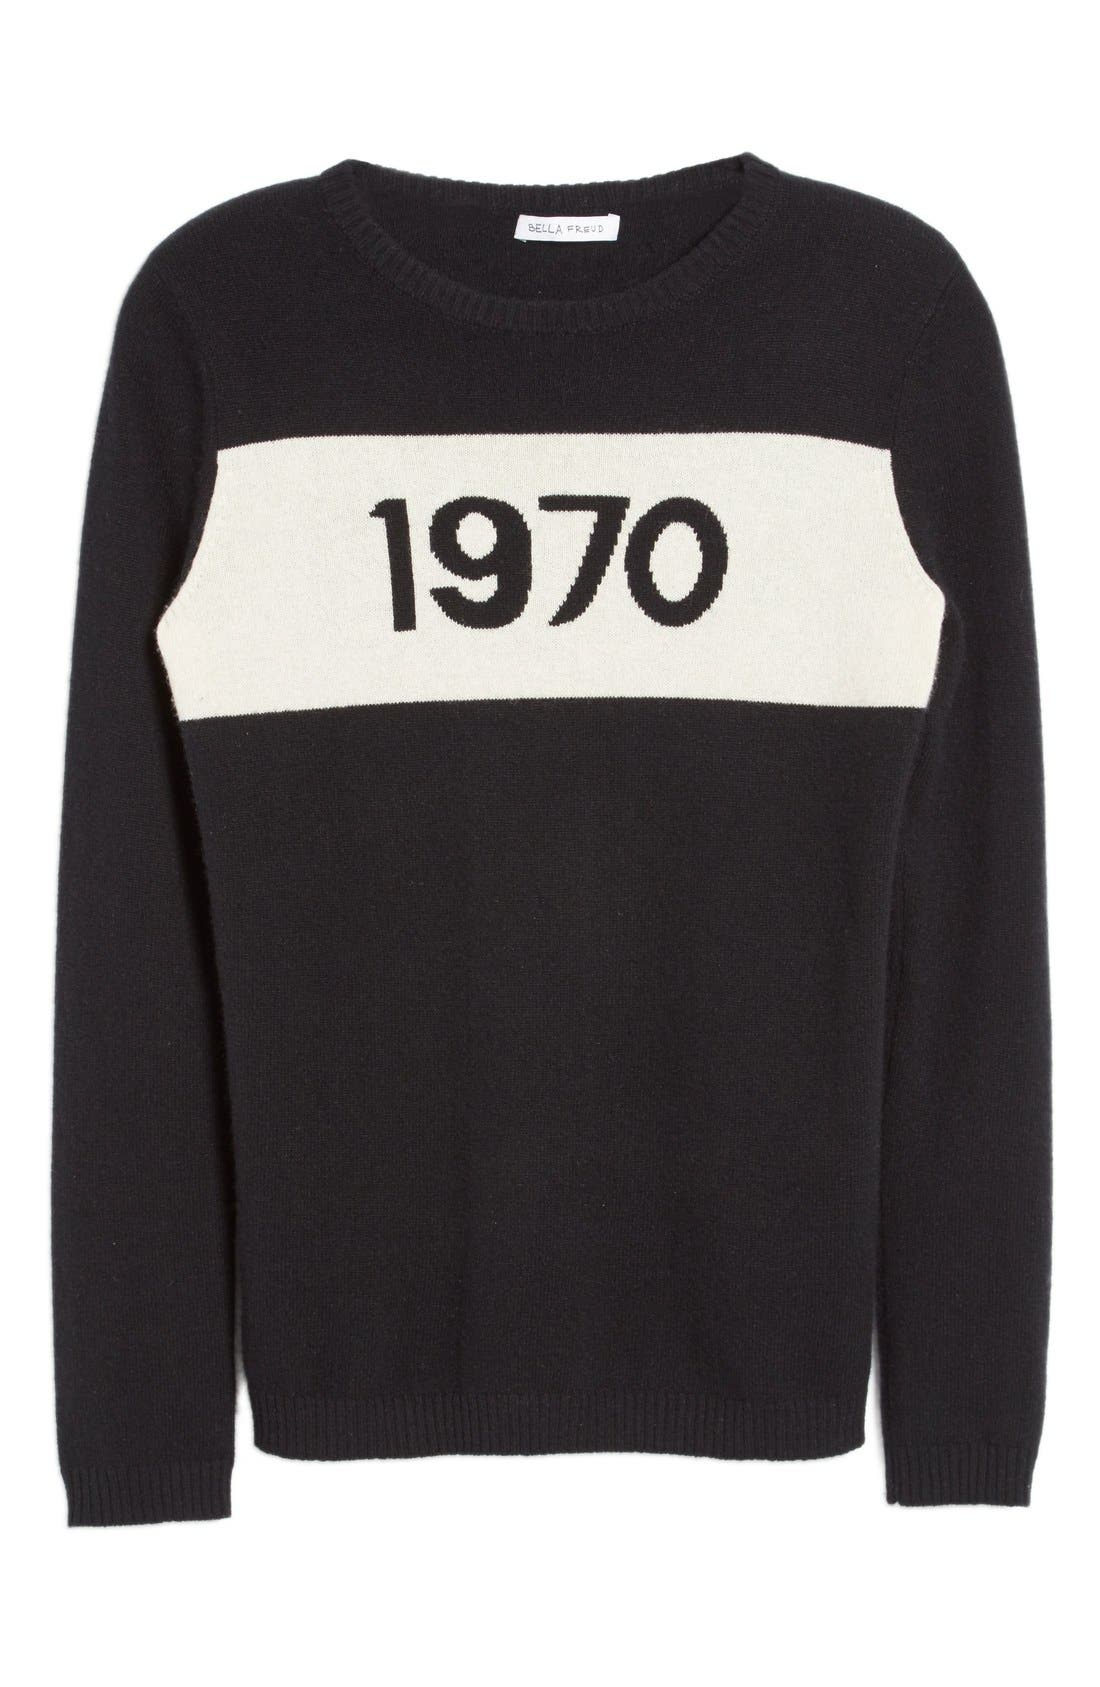 '1970' Wool Sweater,                             Alternate thumbnail 6, color,                             001